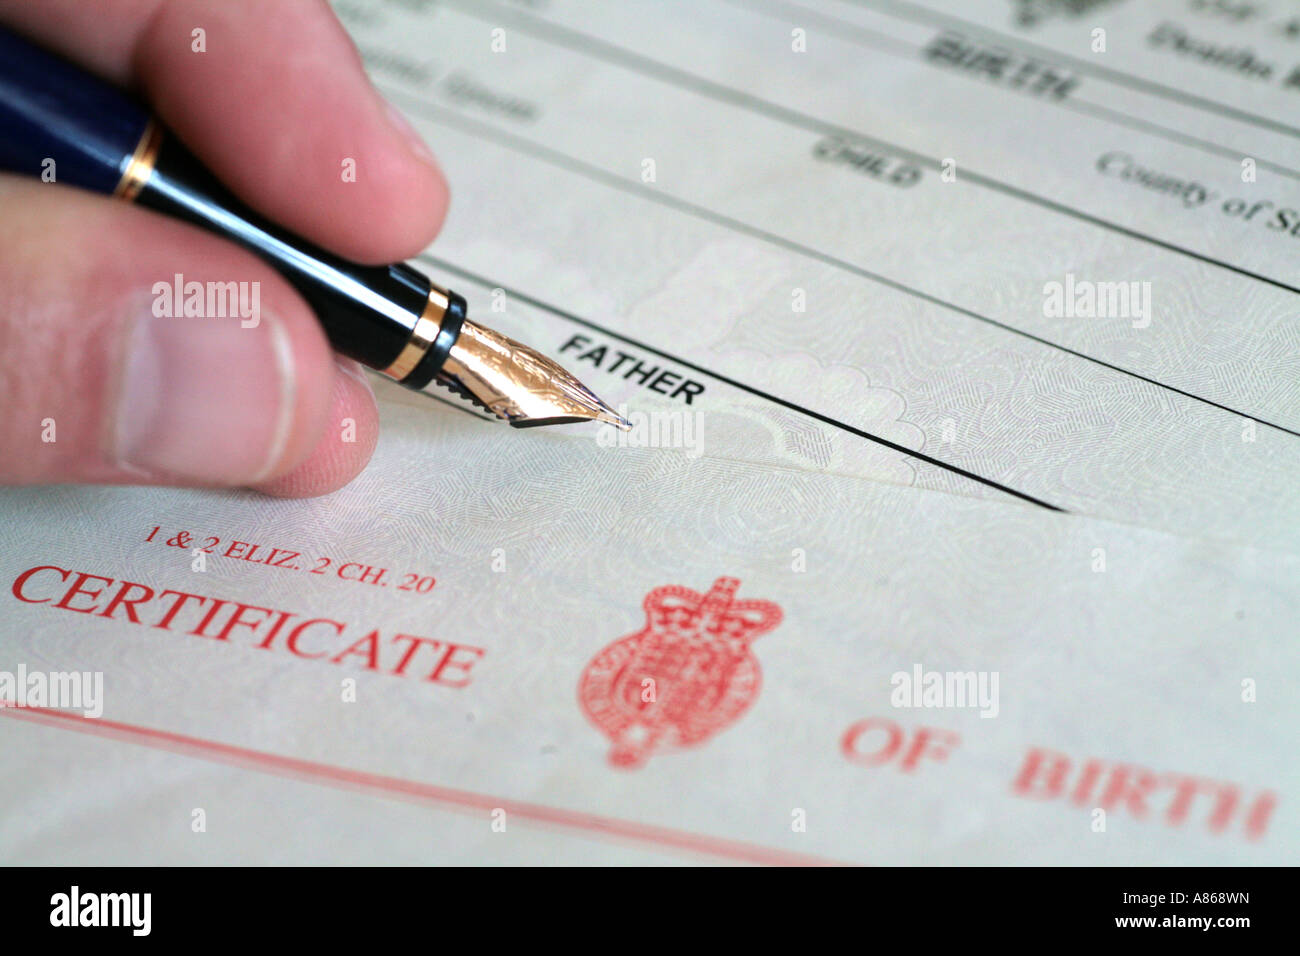 naming father on birth certificate - Stock Image